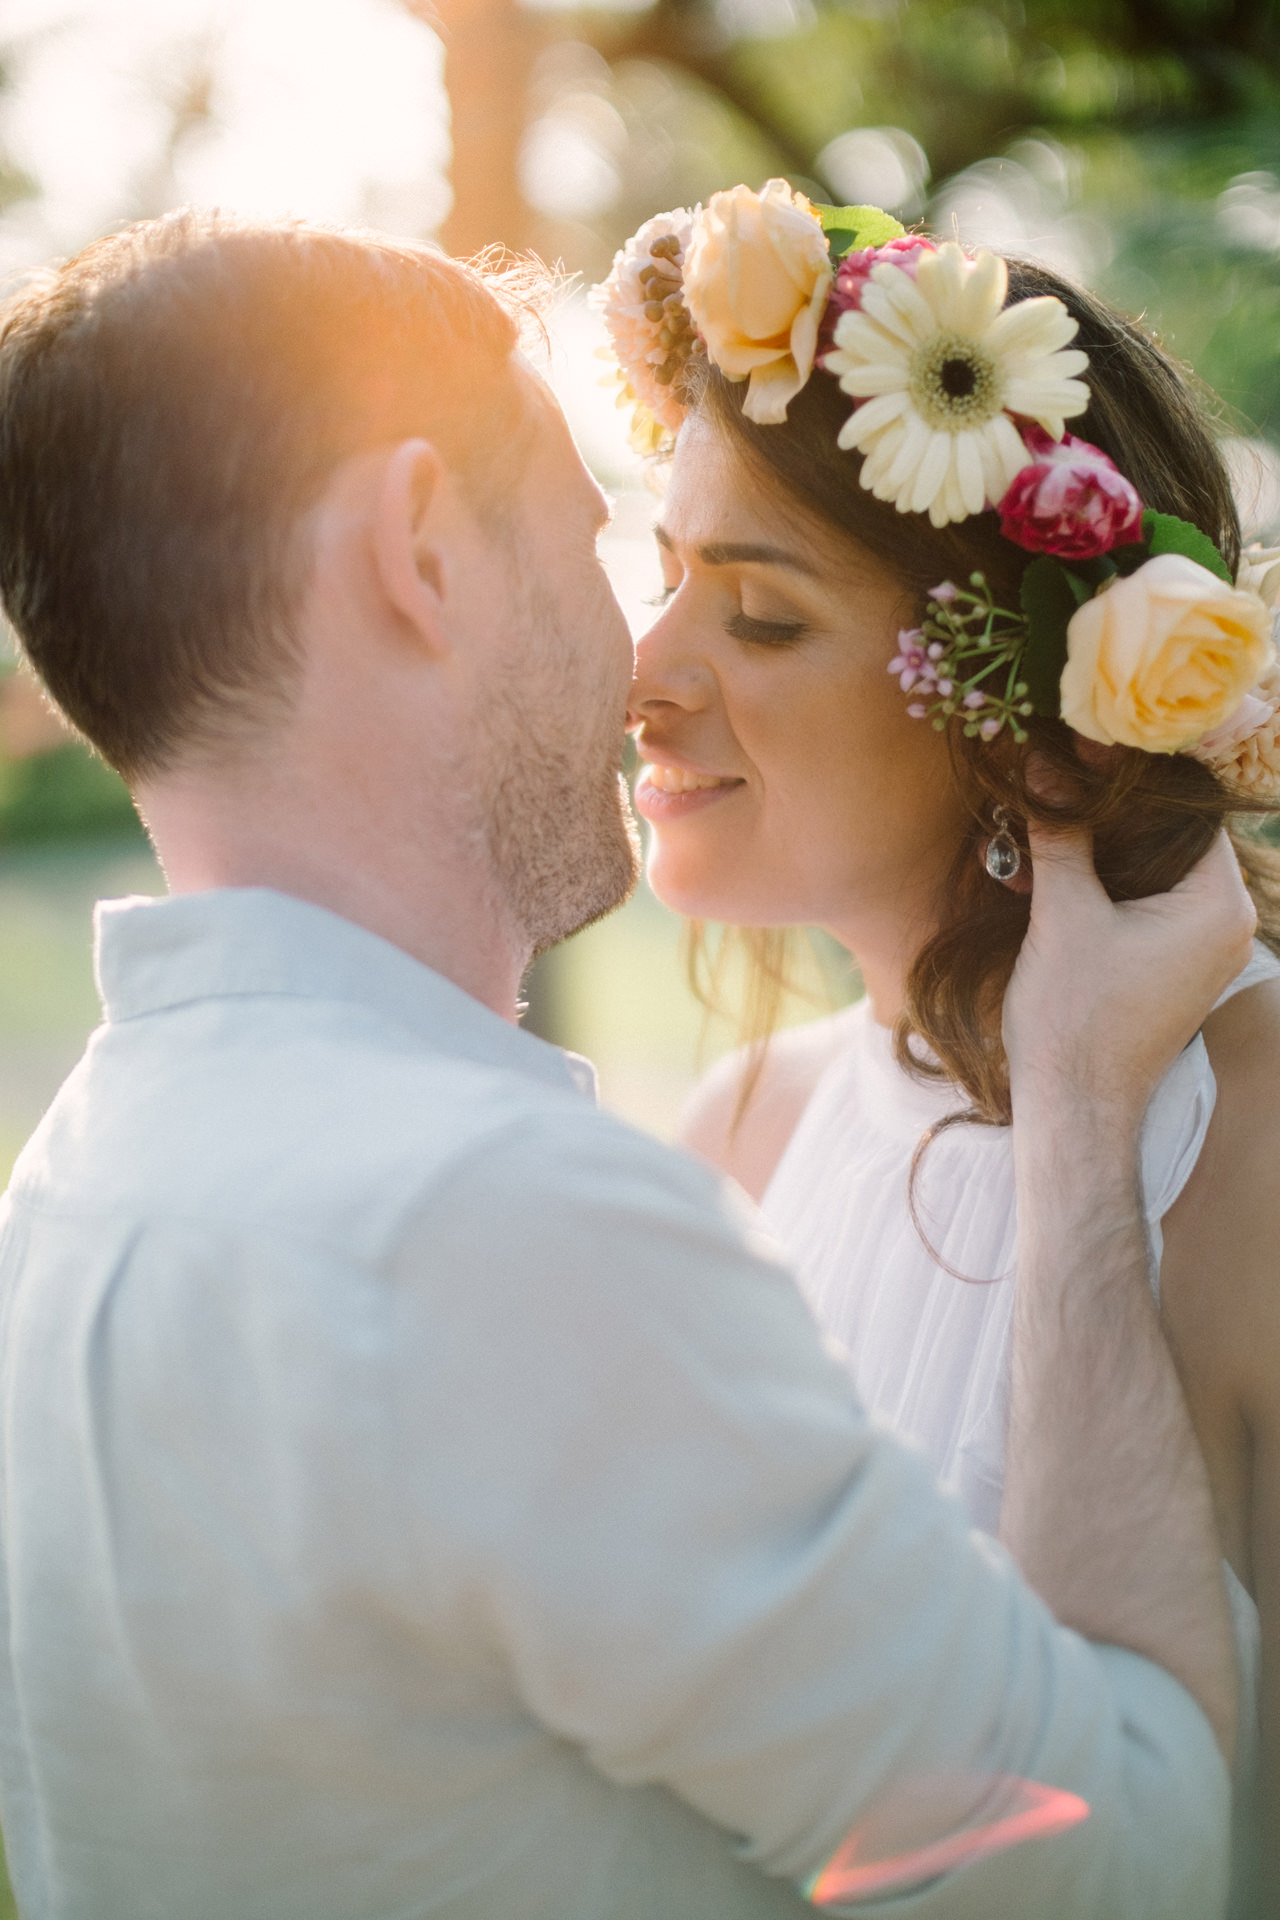 Z&J : Bali Wedding Anniversary Photography Session 5